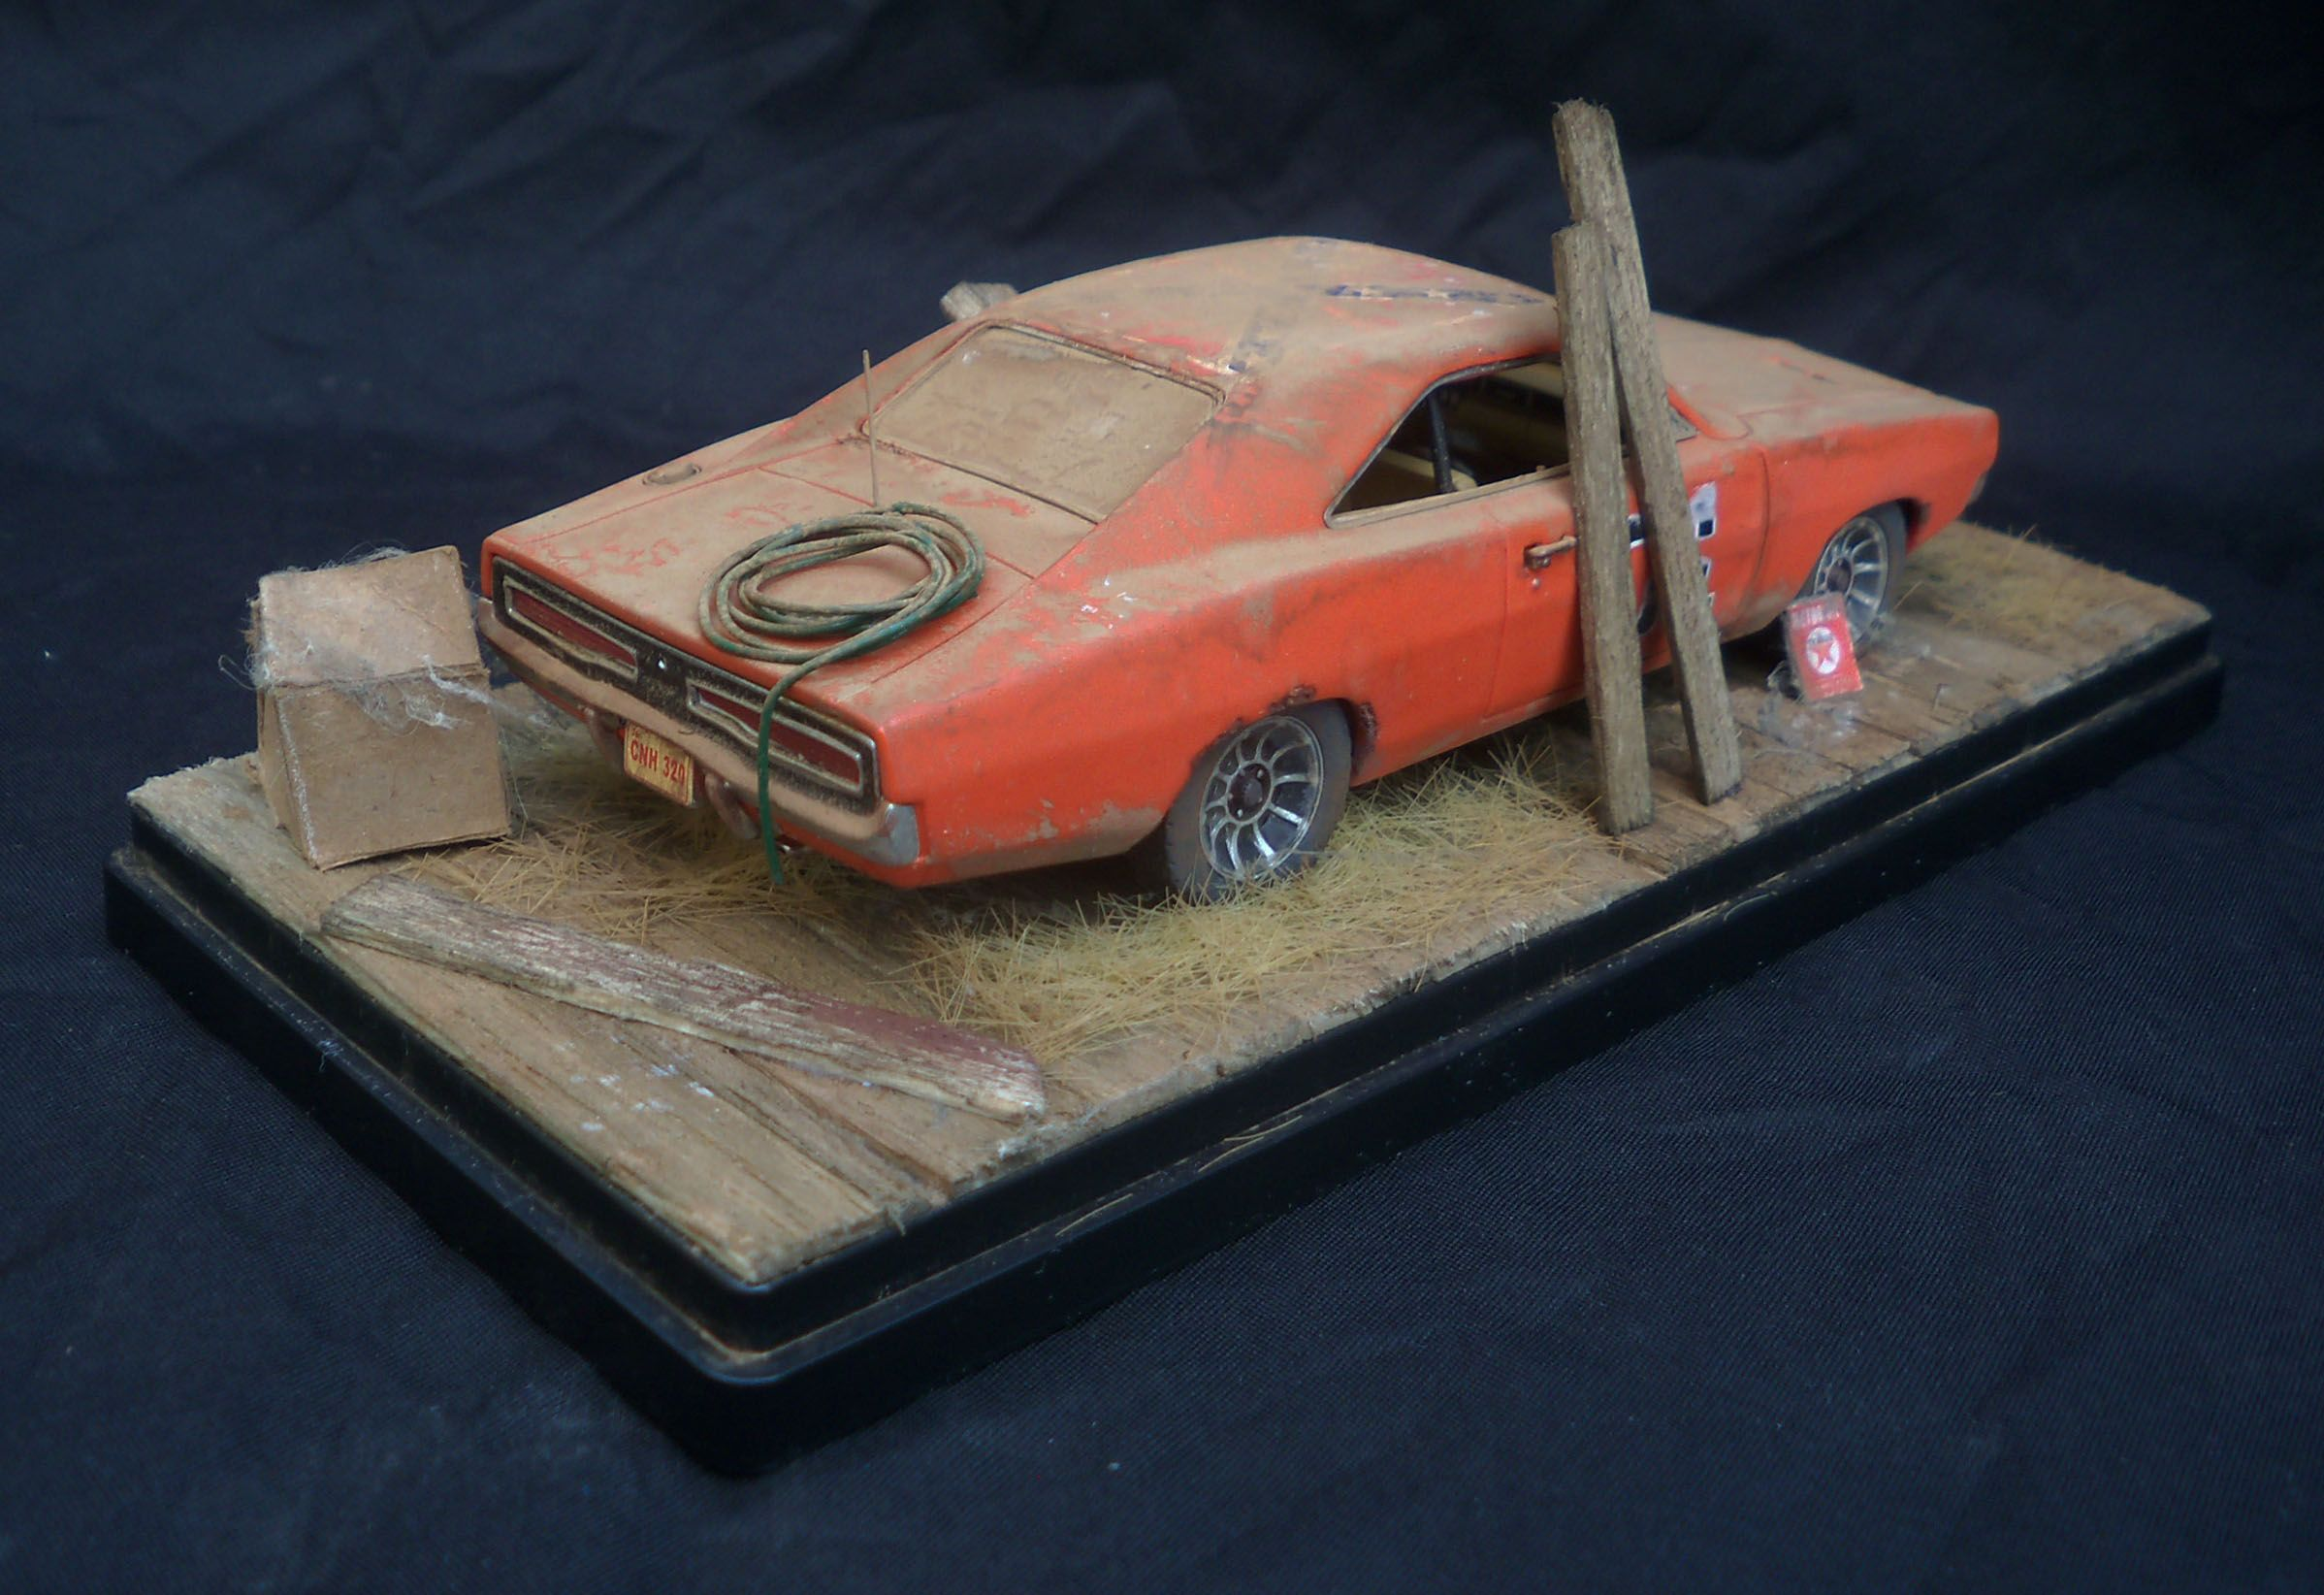 1/43 diorama for sale on Ebay  | Weathered Barn Finds Automotive Art